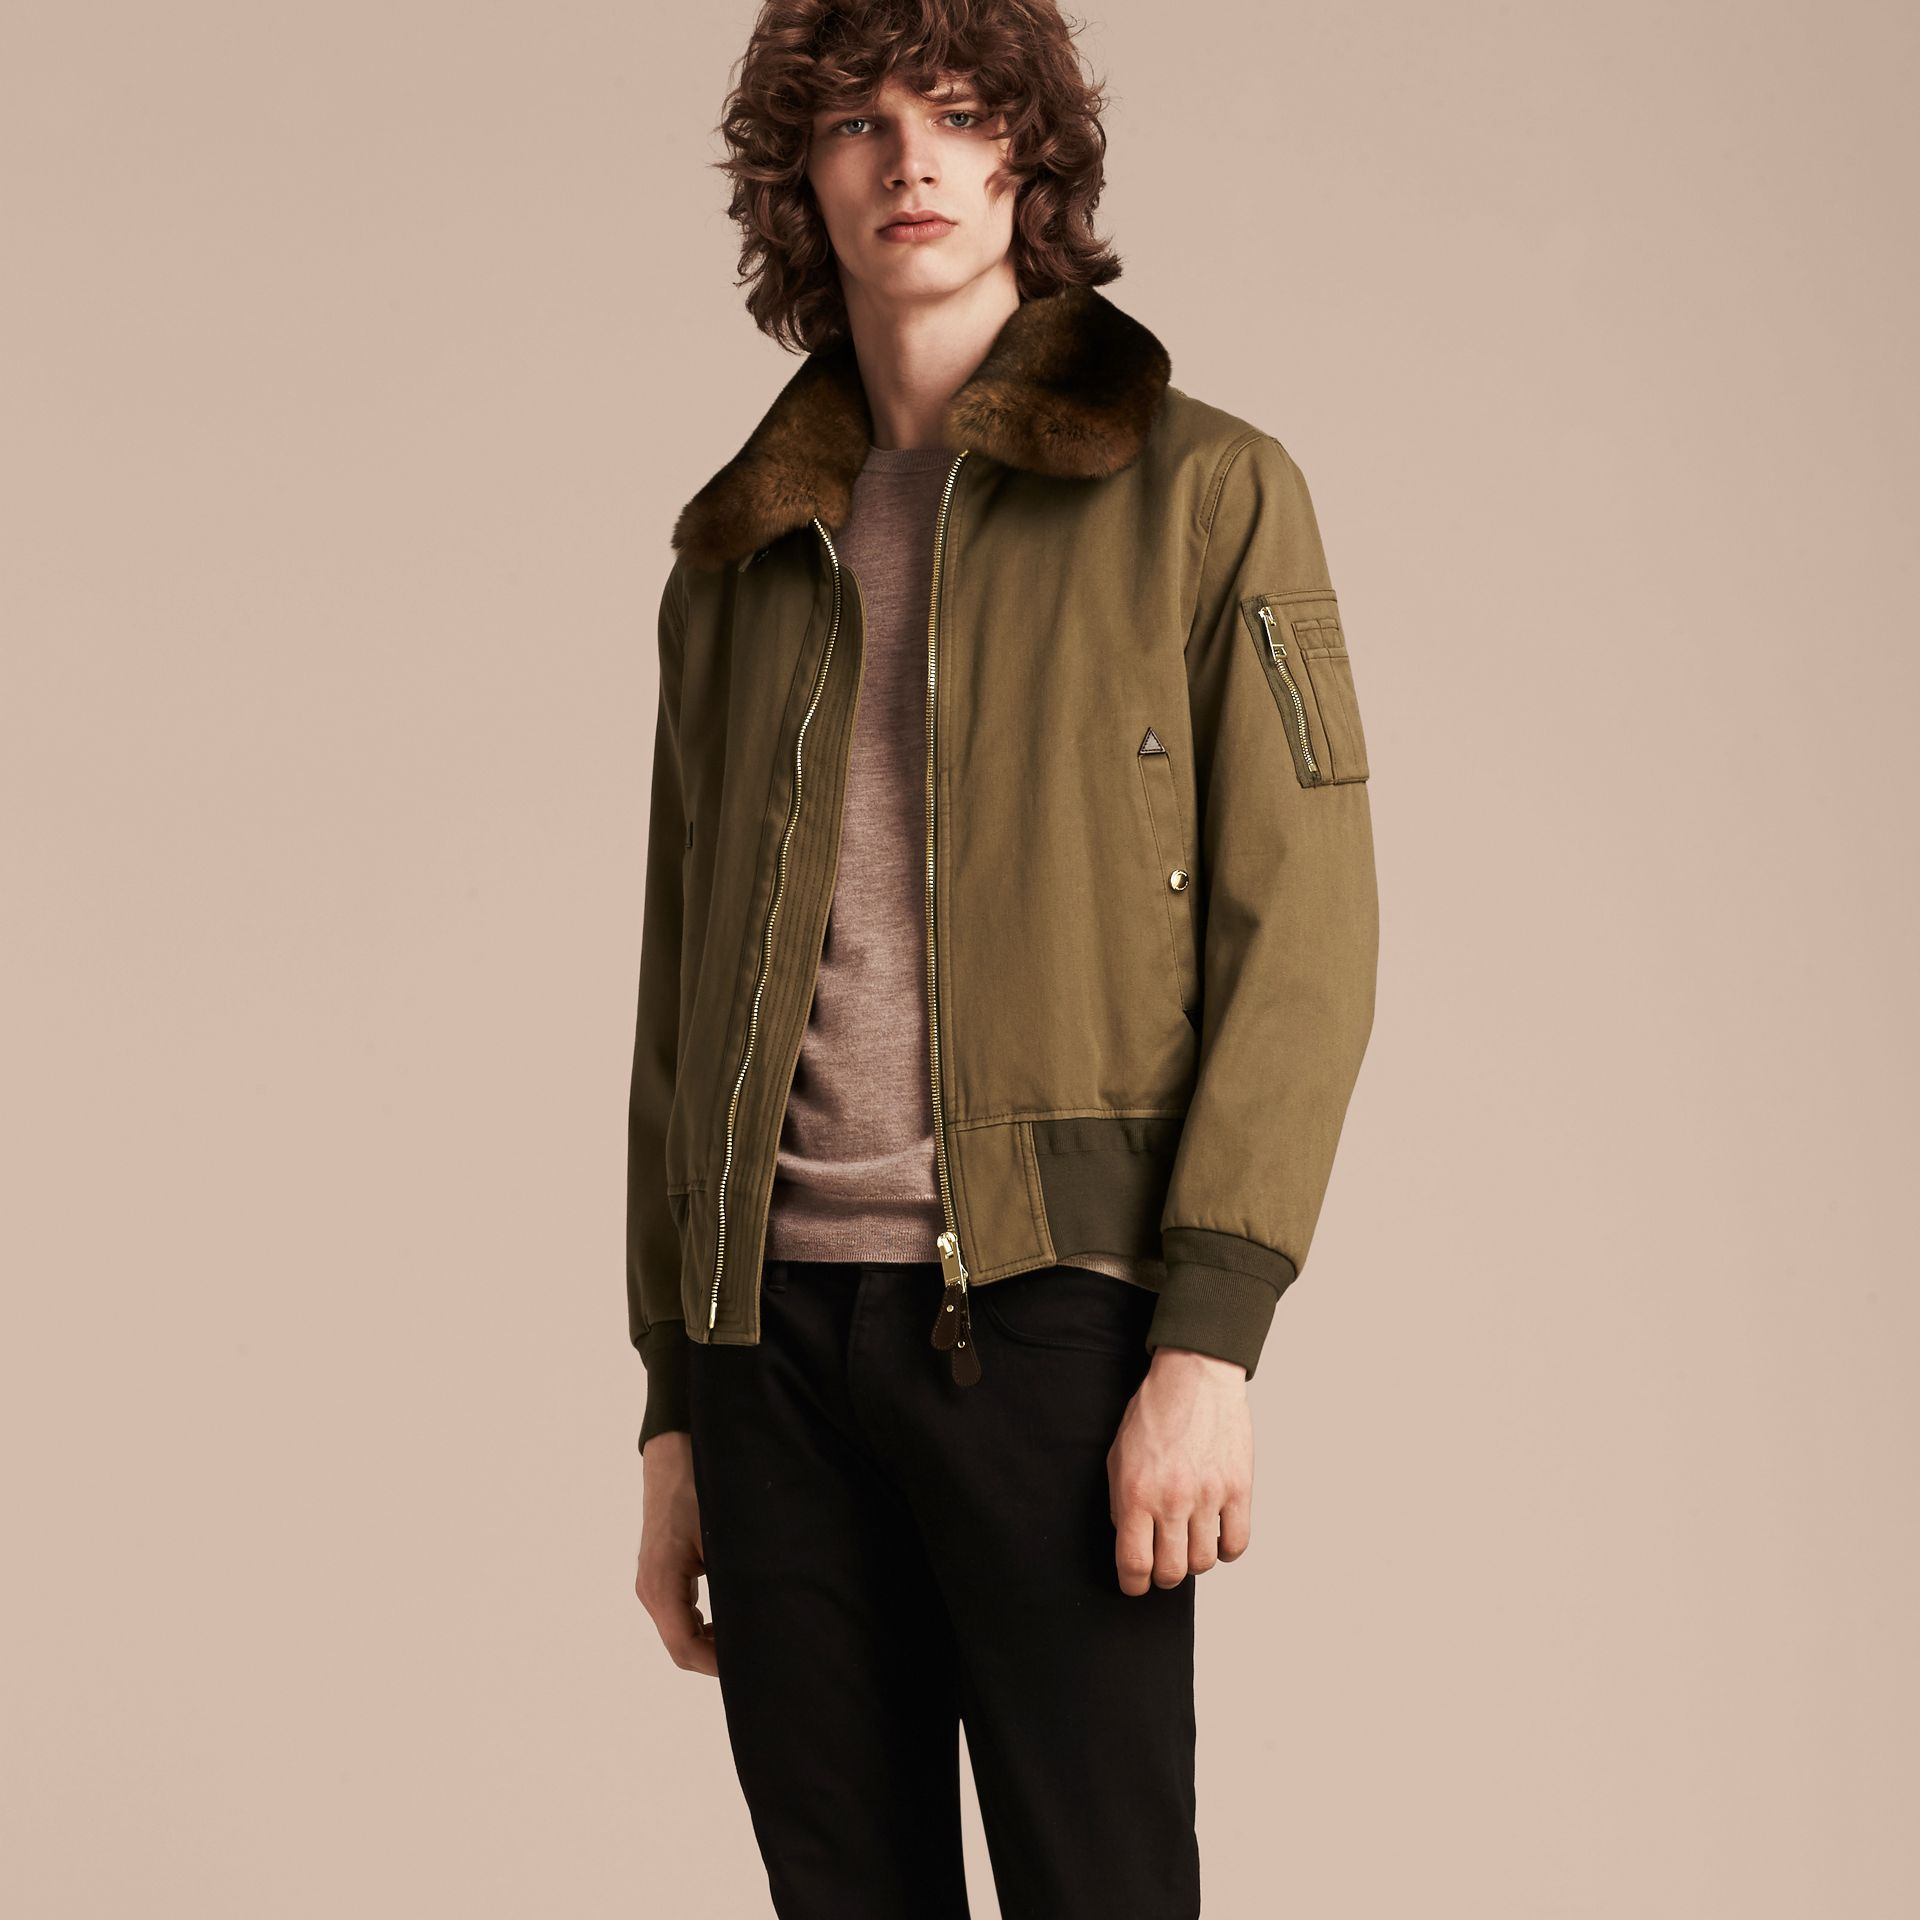 Olive green Cotton Bomber Jacket with Detachable Fur-lined Warmer - gallery image 4